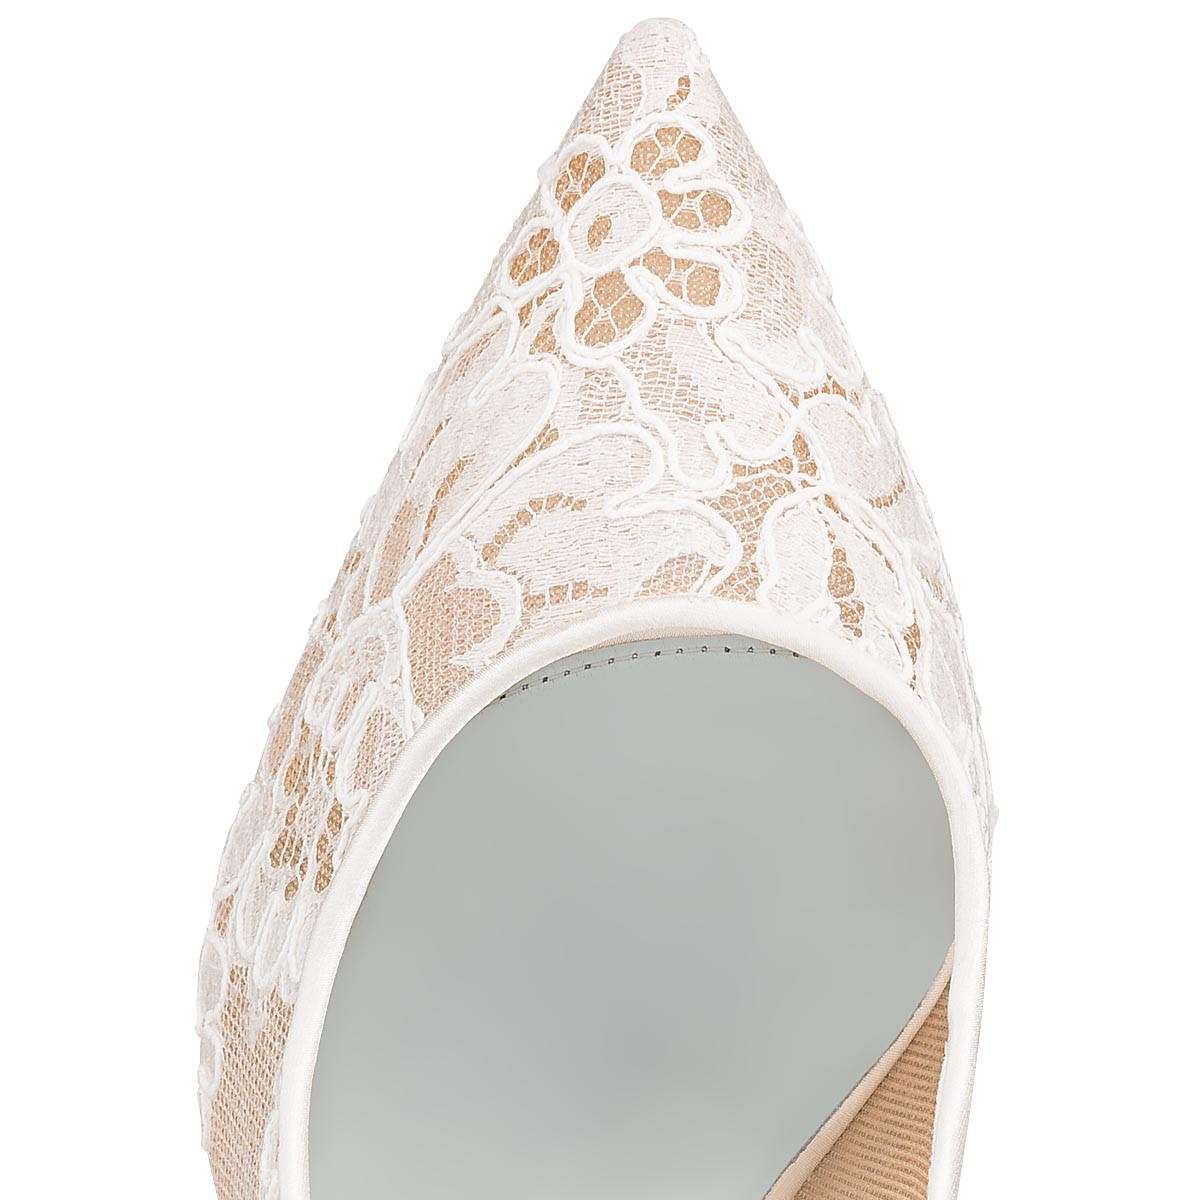 Souliers - Follies Lace 100 Dentelle - Christian Louboutin